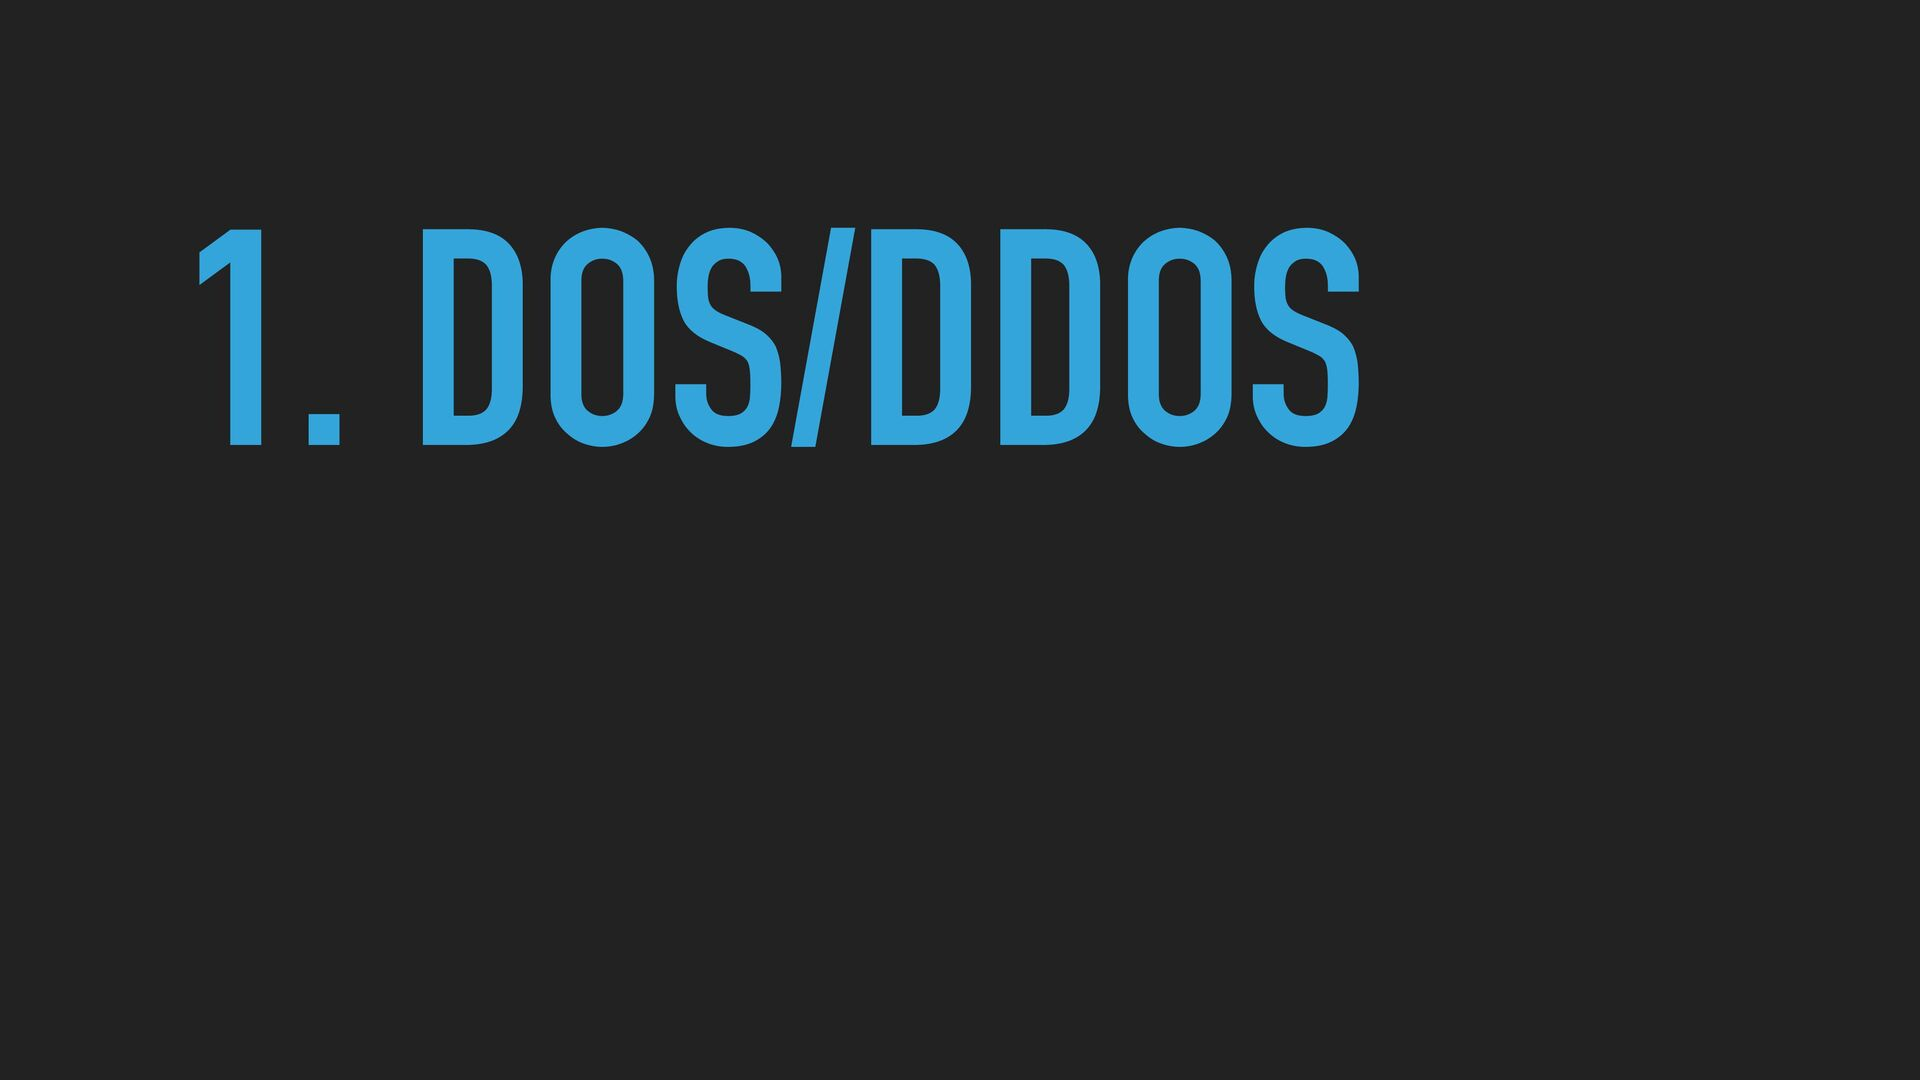 1. DOS/DDOS   2. BRUTE FORCE